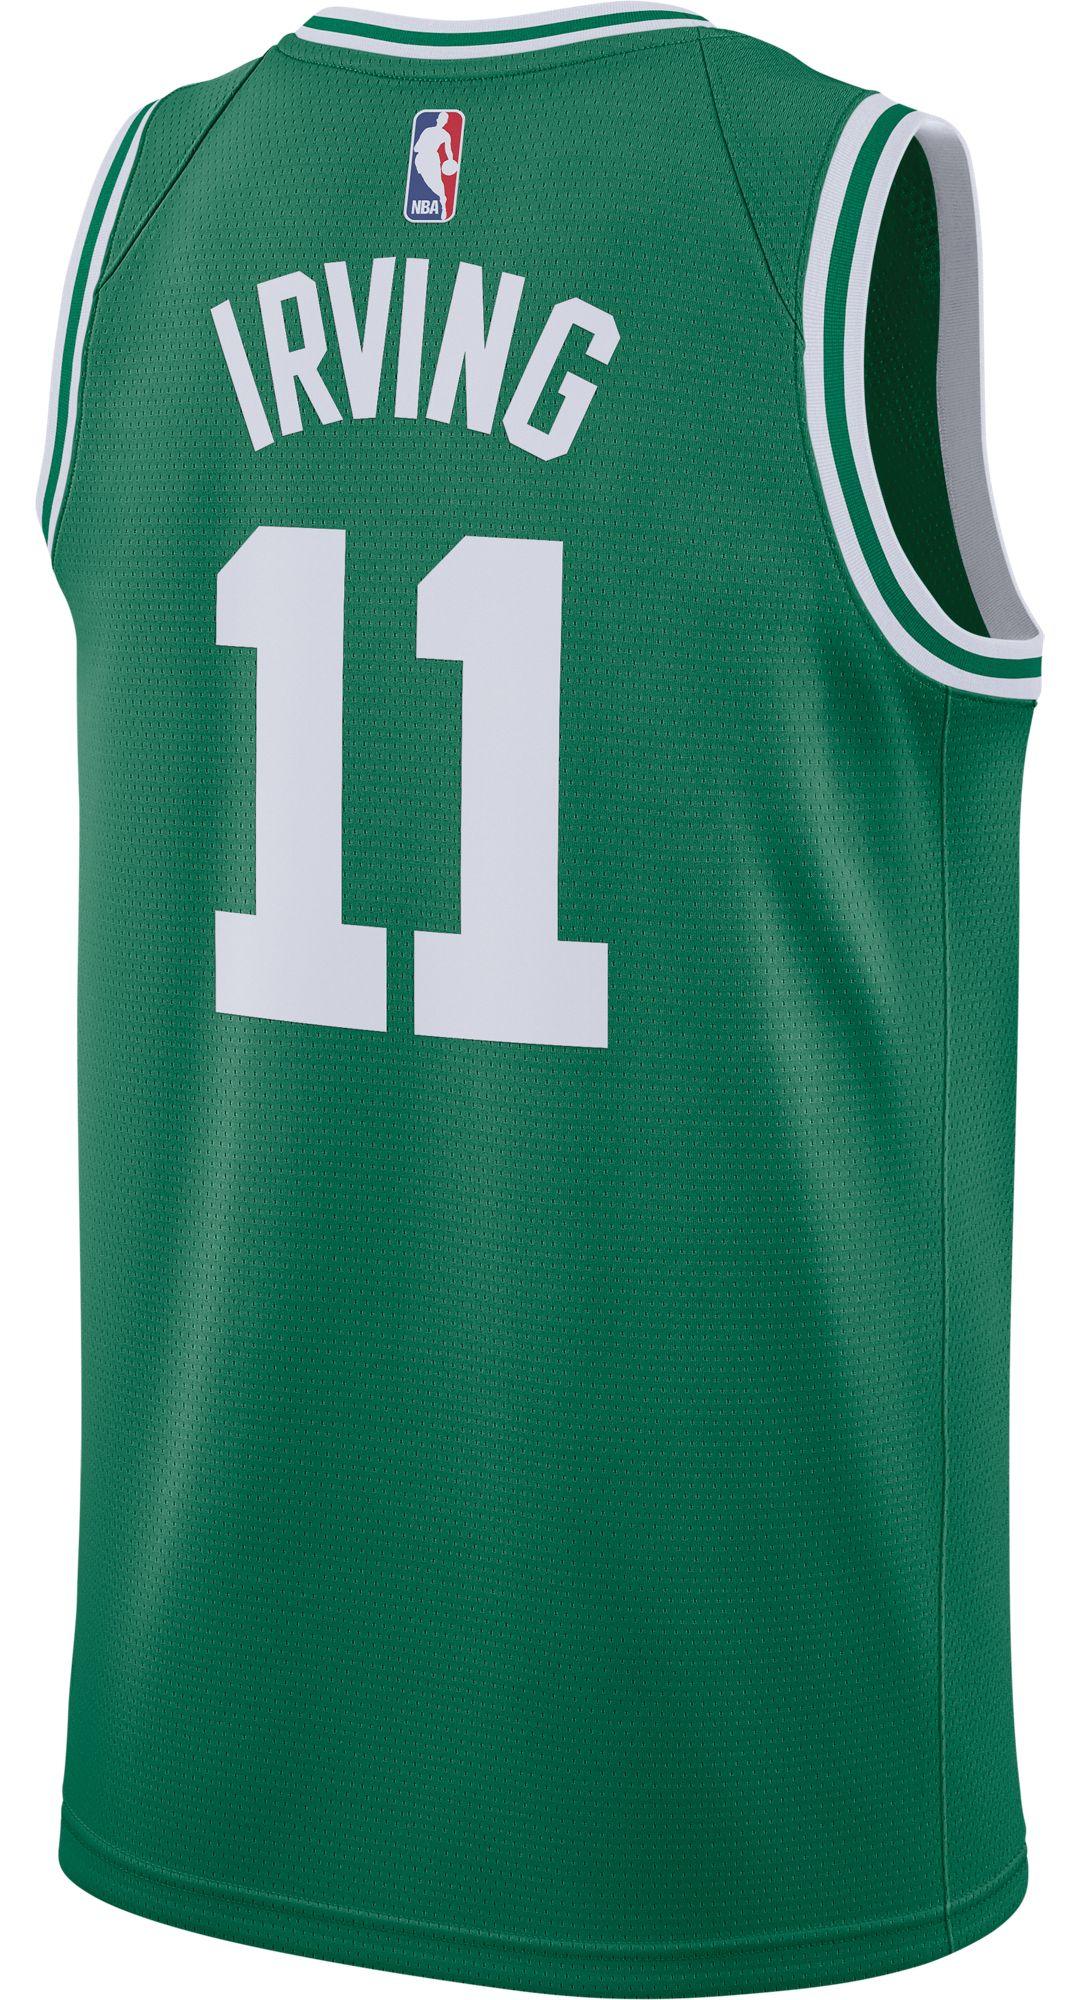 071ed4e7a8f4 Nike Men s Boston Celtics Kyrie Irving  11 Kelly Green Dri-FIT Swingman  Jersey 3